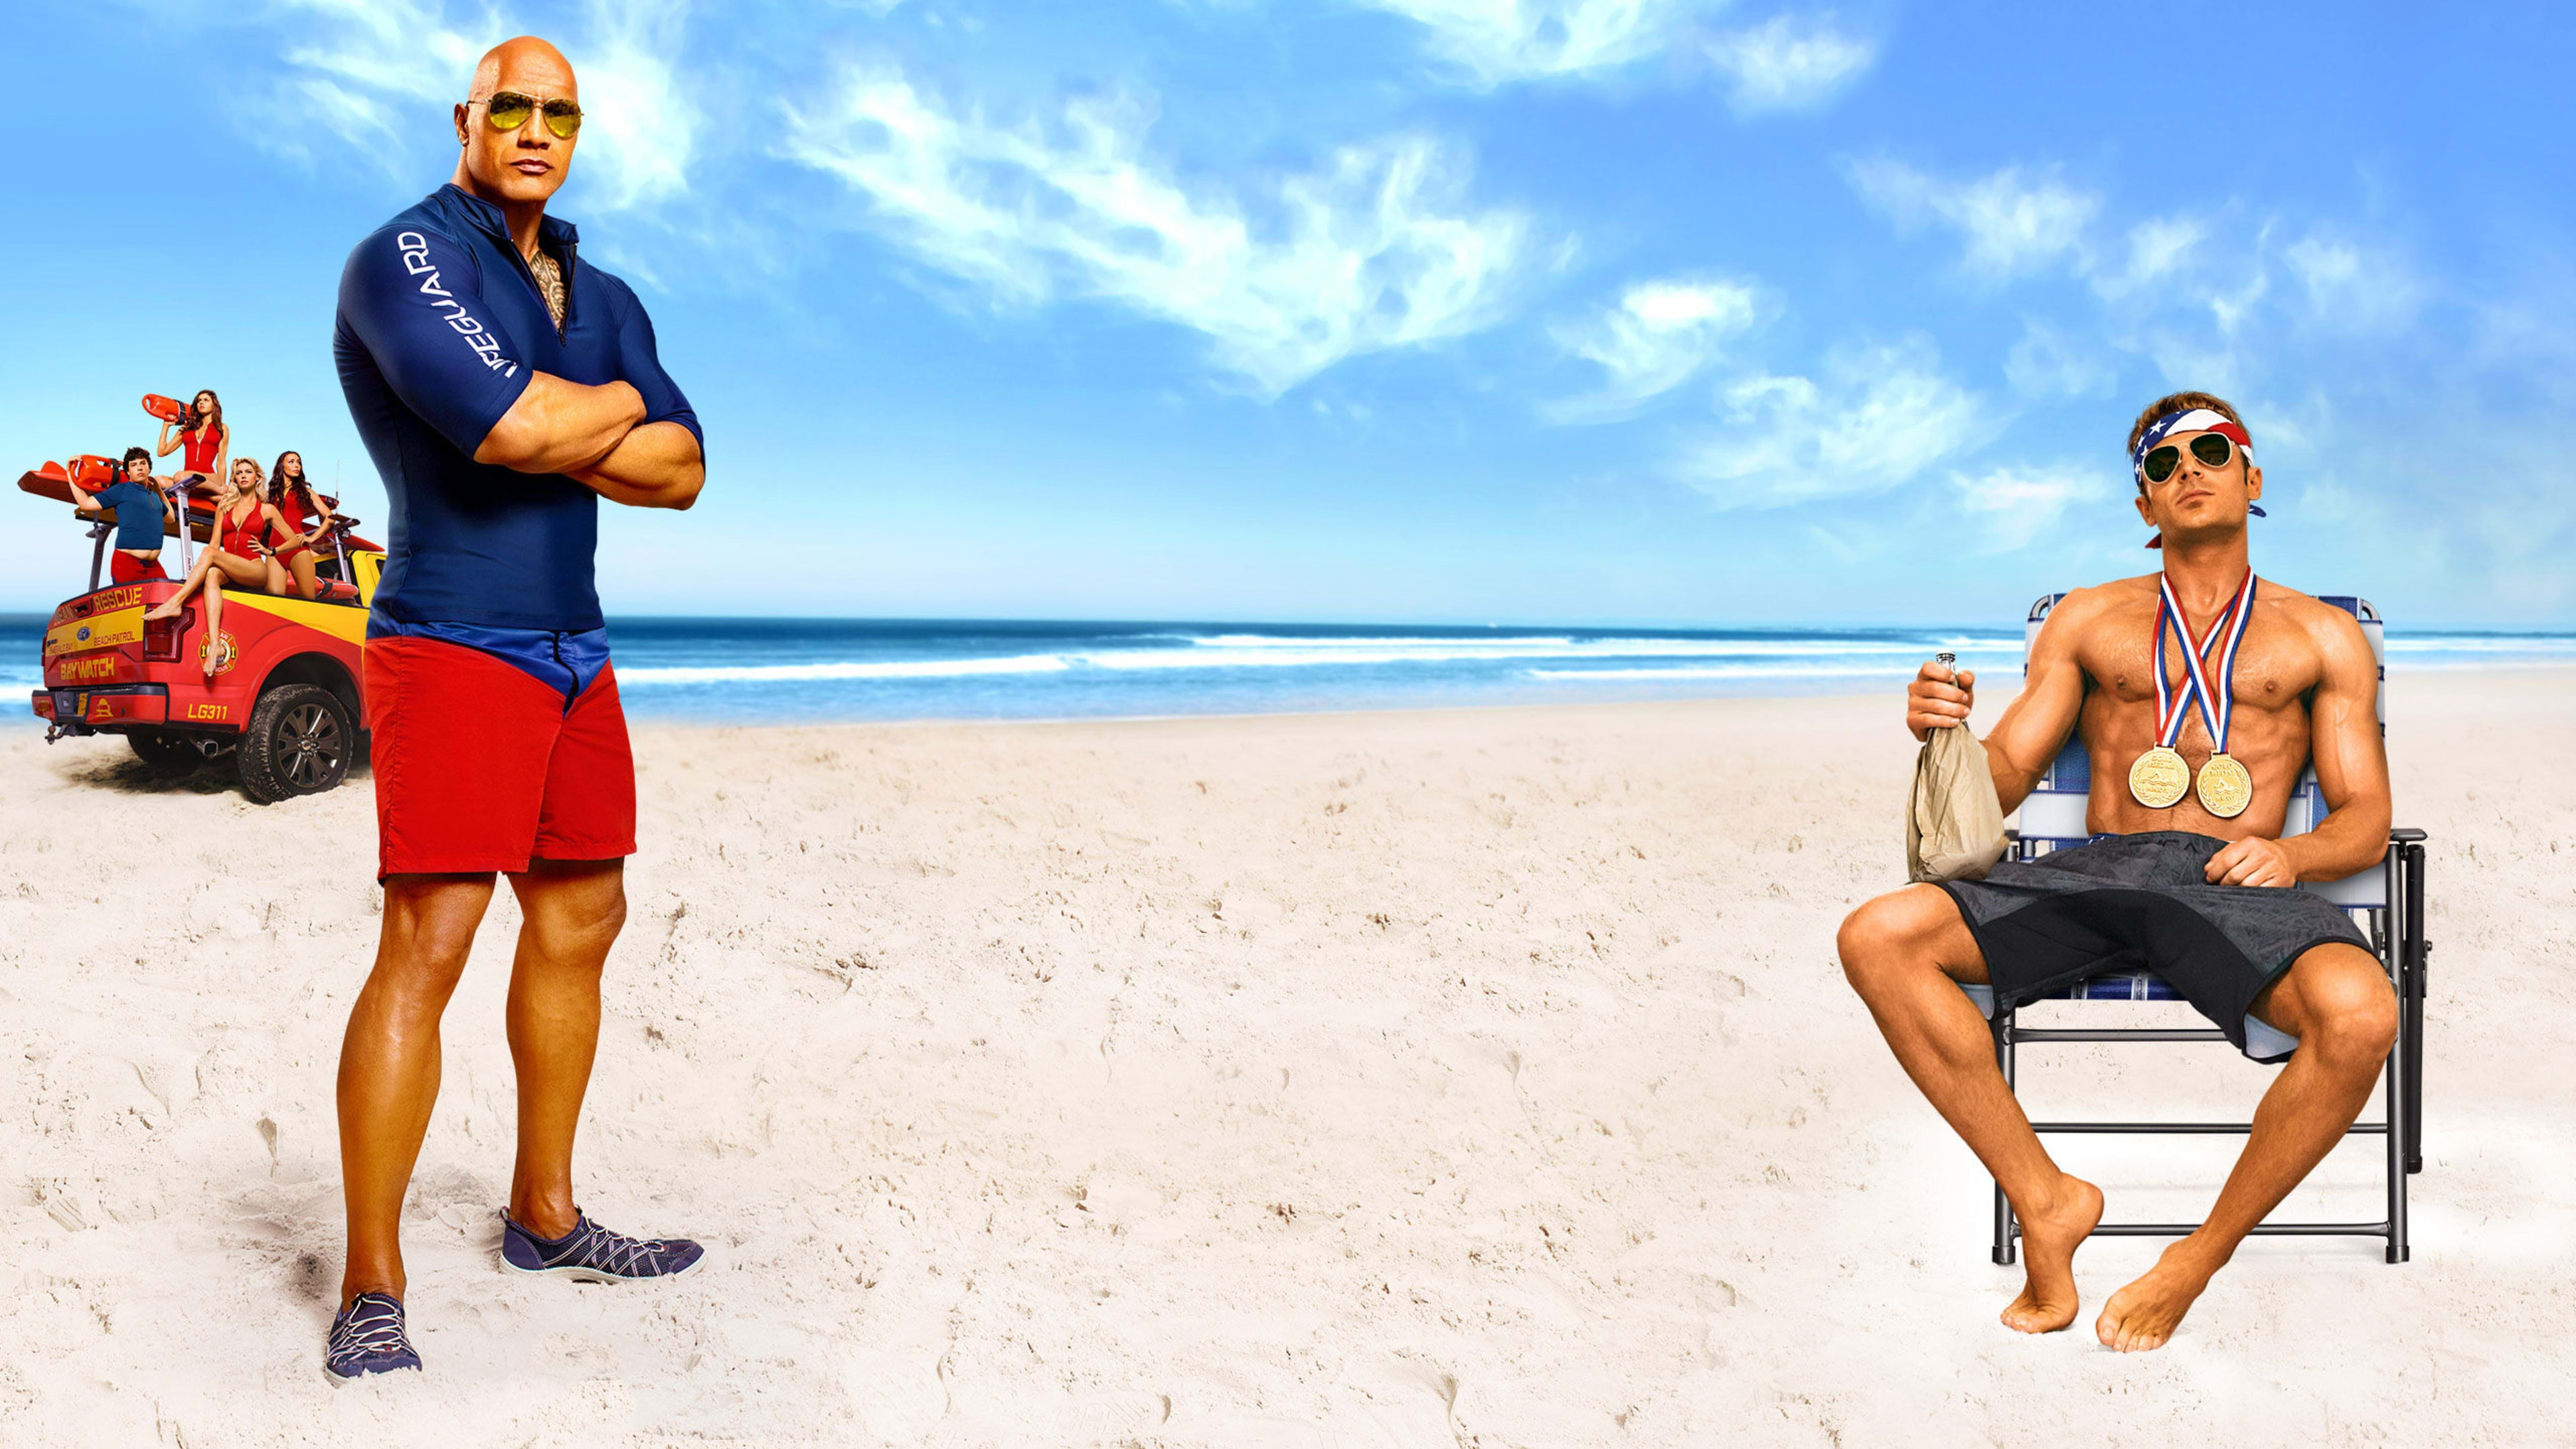 Baywatch Desktop wallpaper